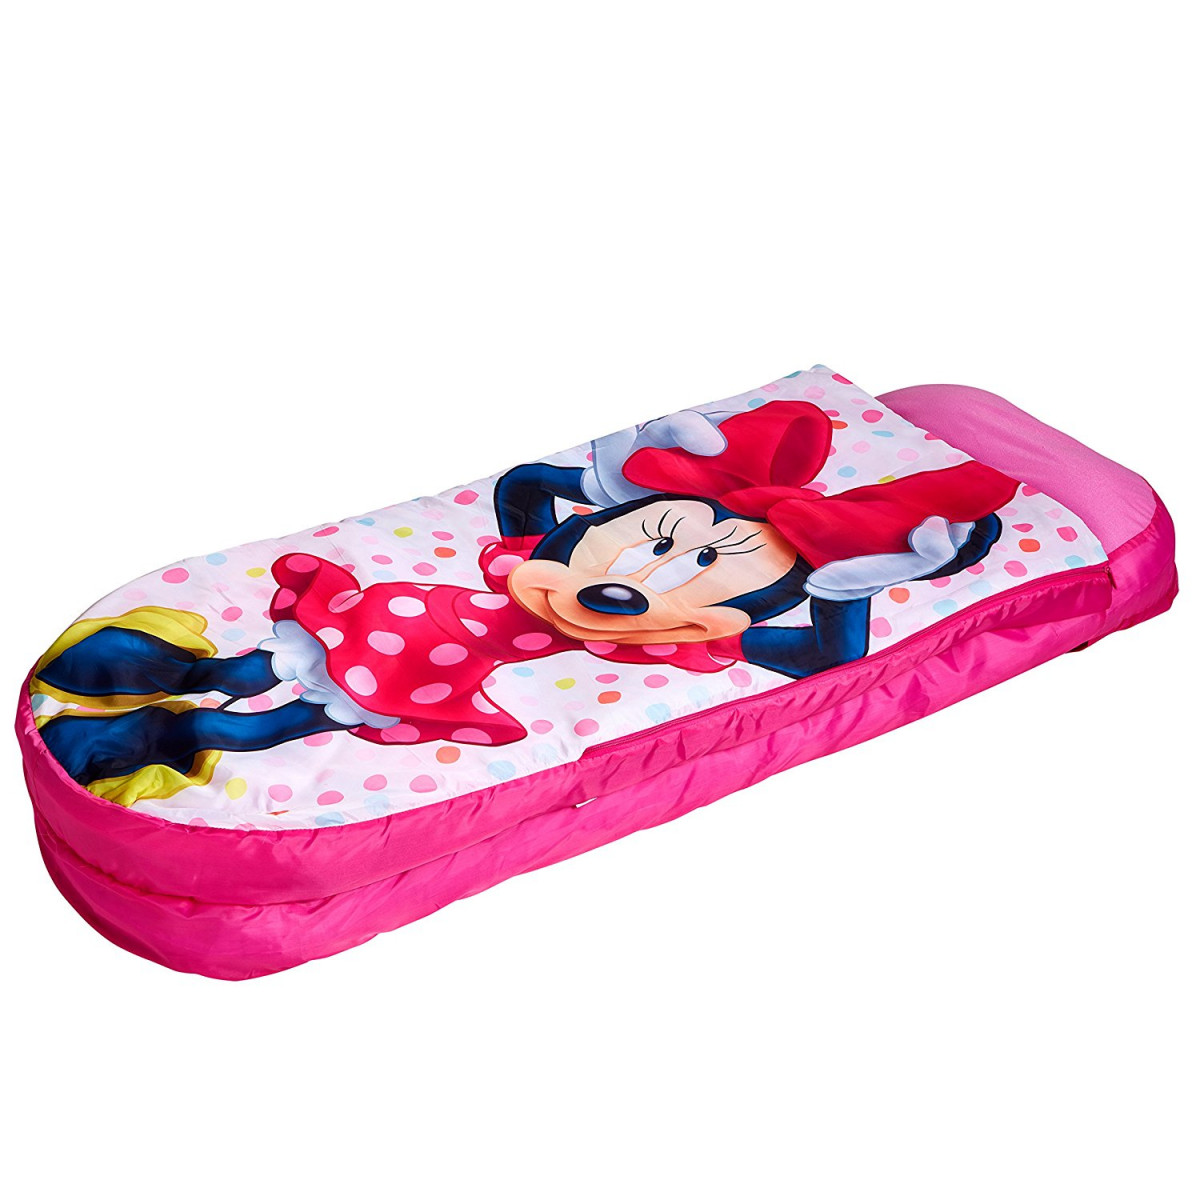 Lit gonflable d'appoint ReadyBed Minnie Mouse Disney